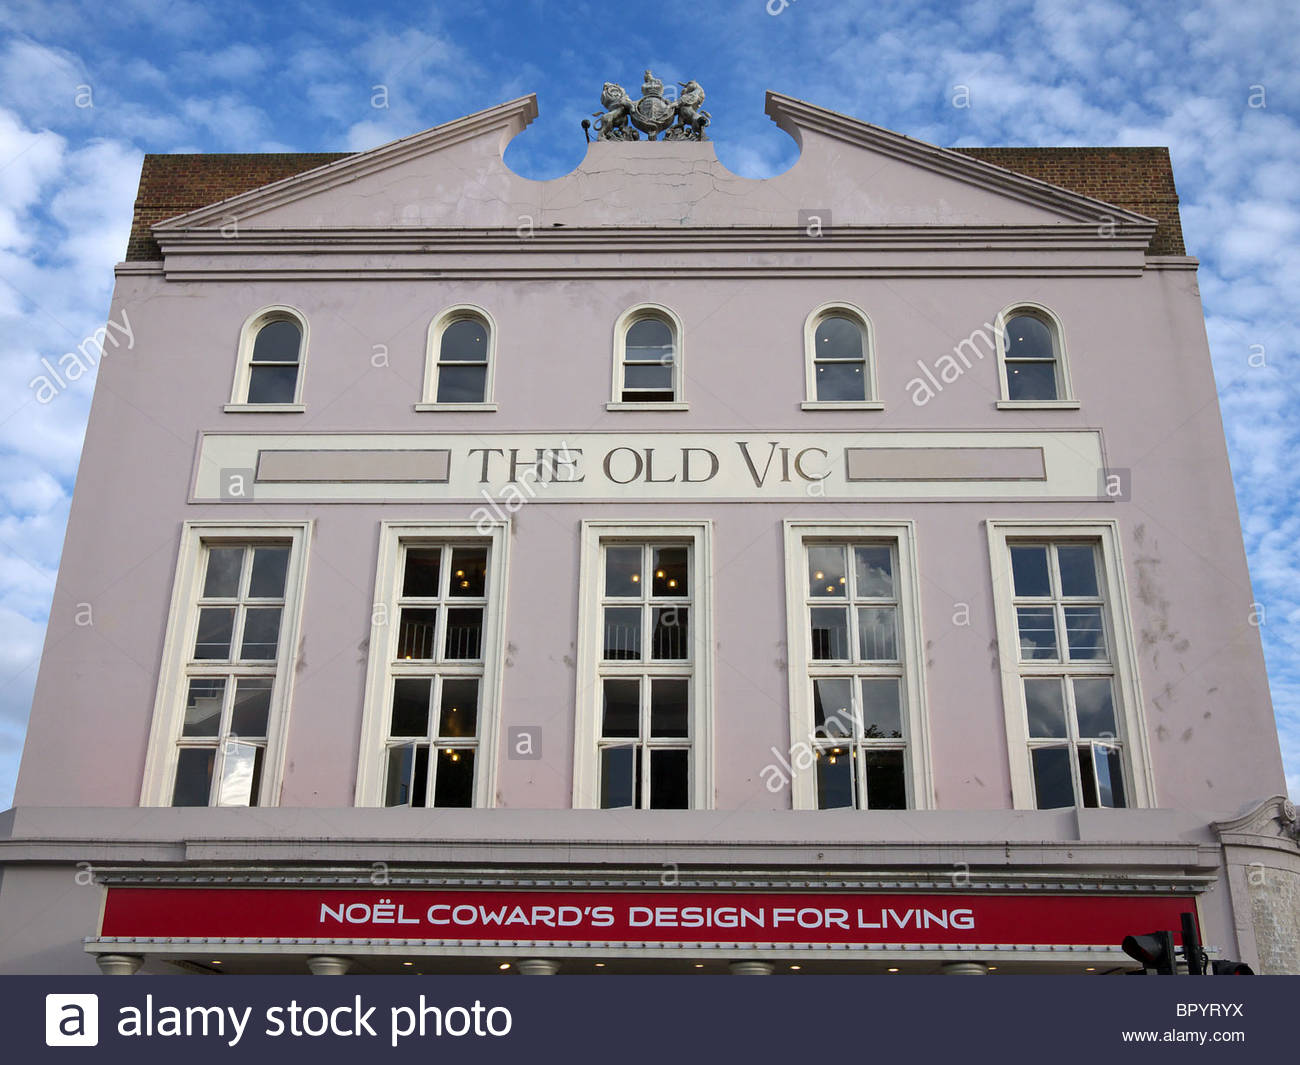 Front view of The Old Vic Theatre in London - Stock Image